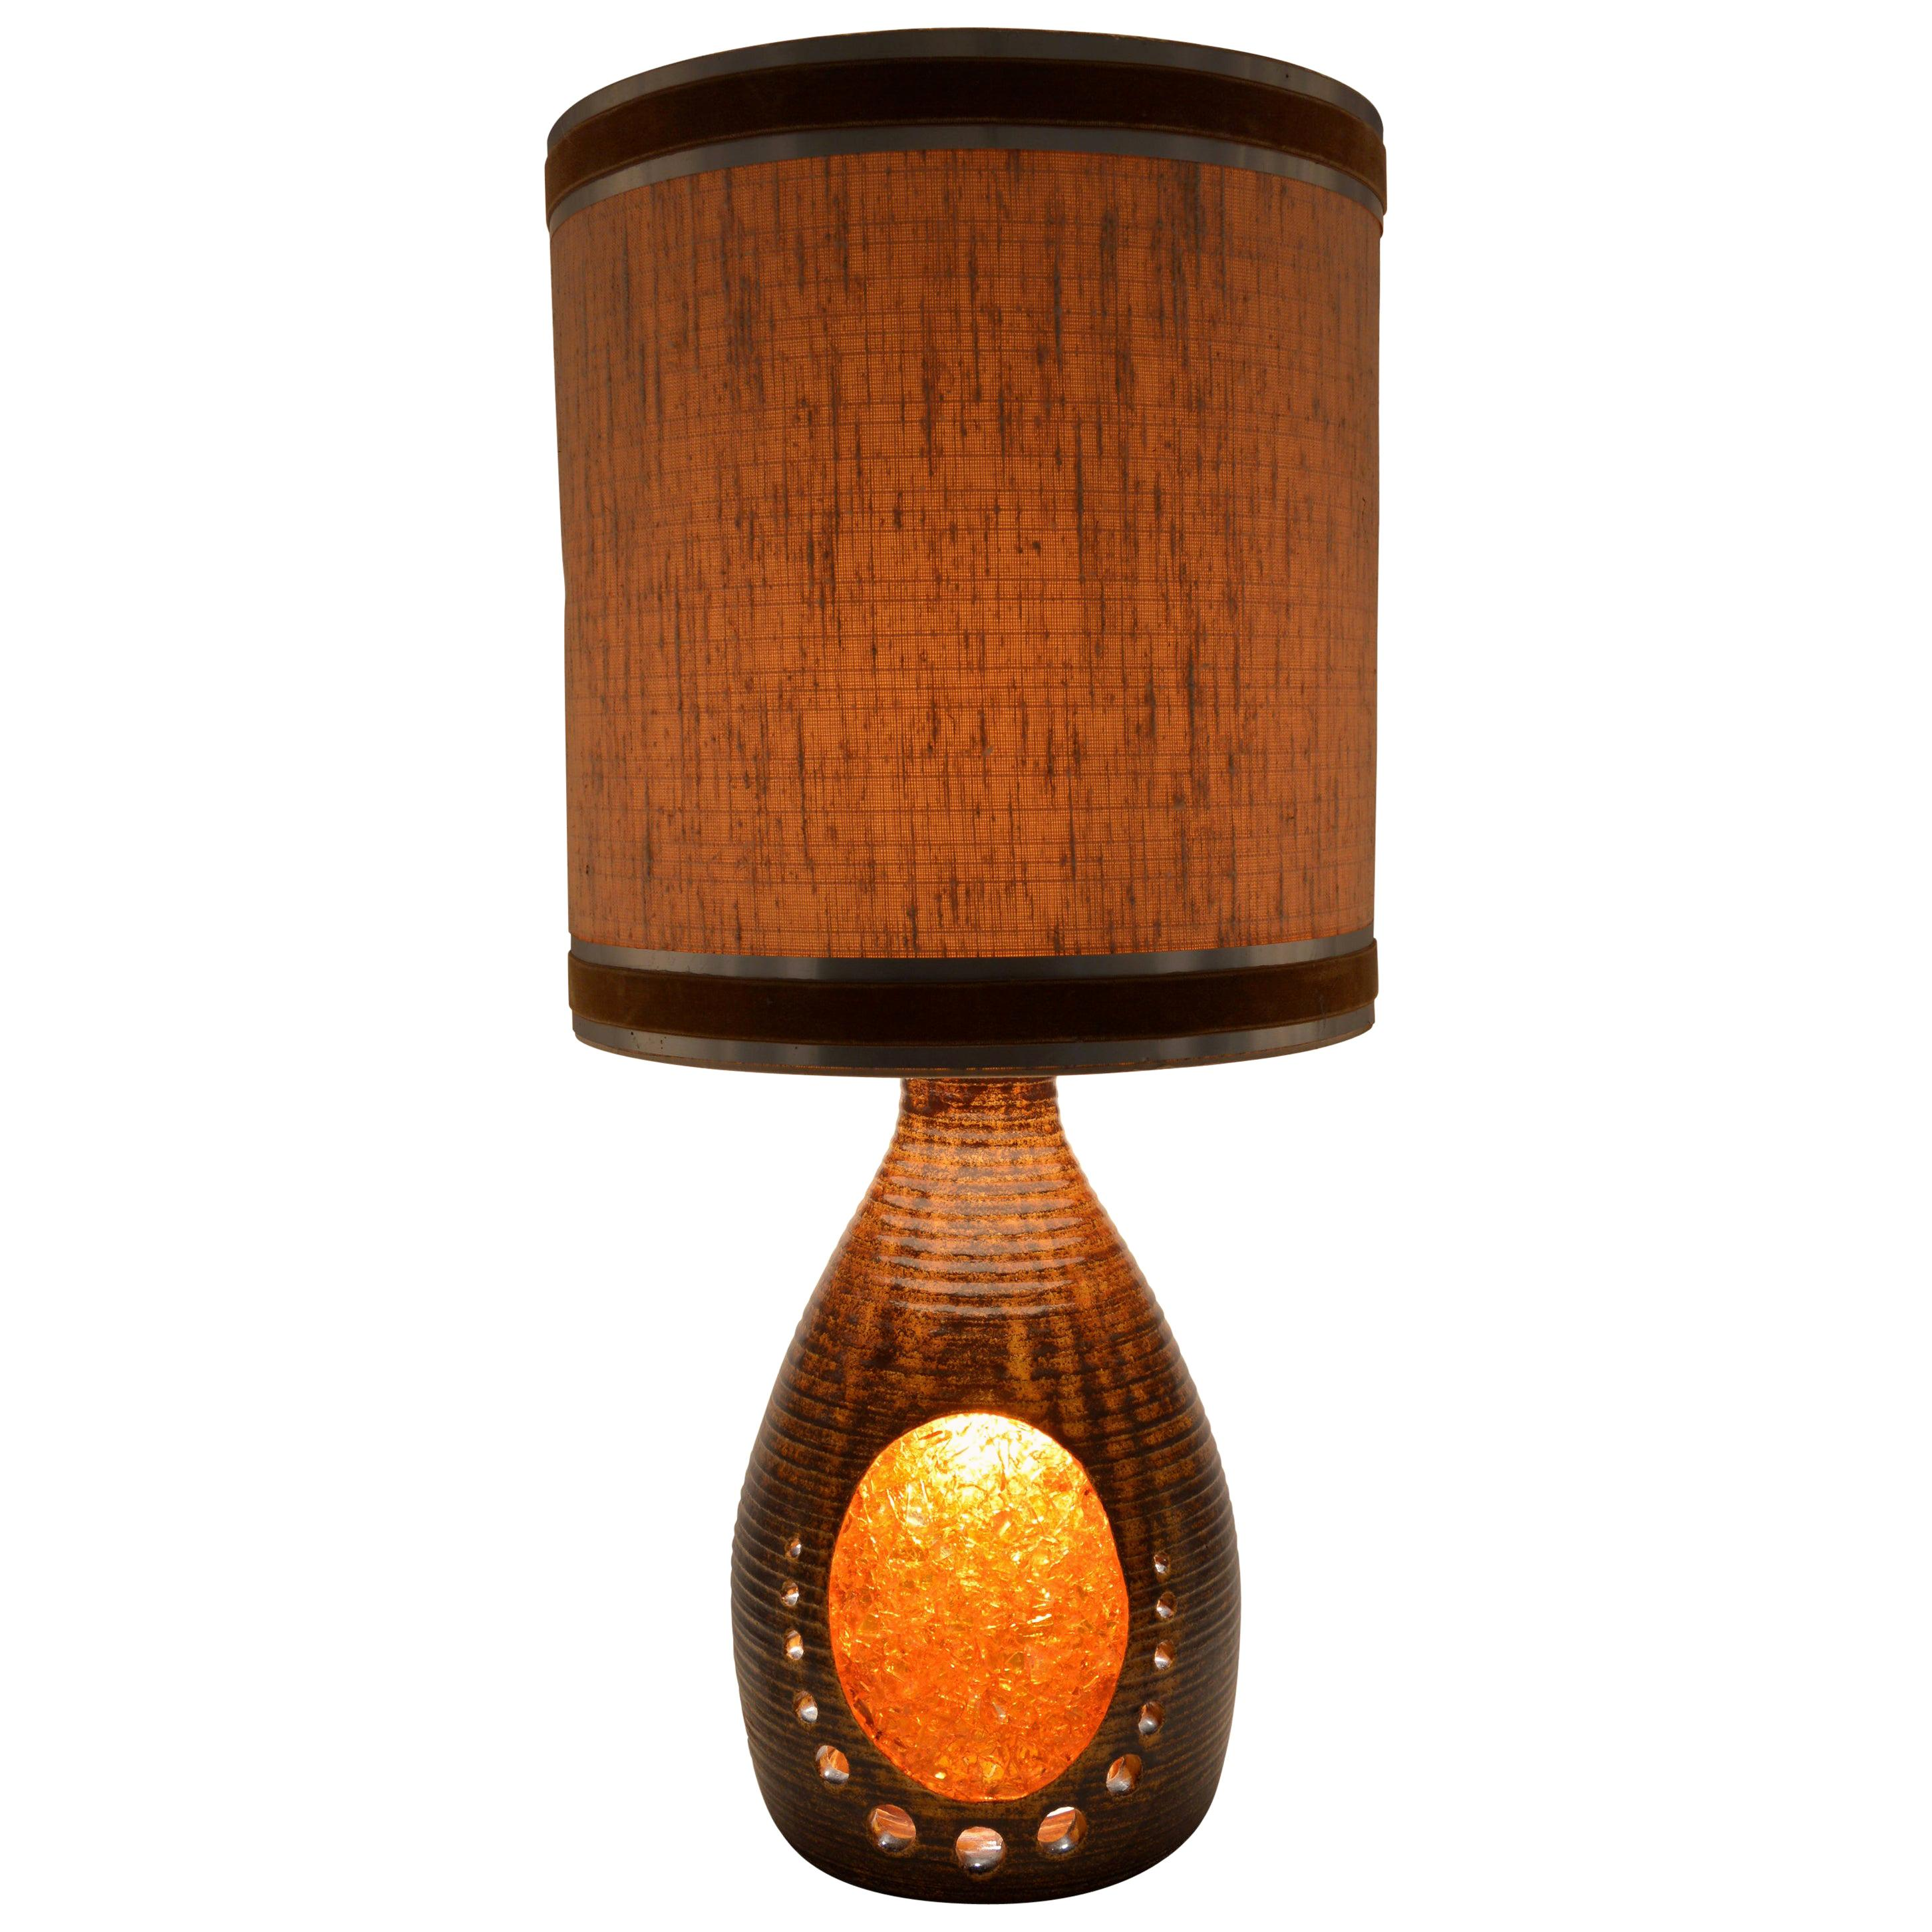 Large French Midcentury Table Lamp, 1960s